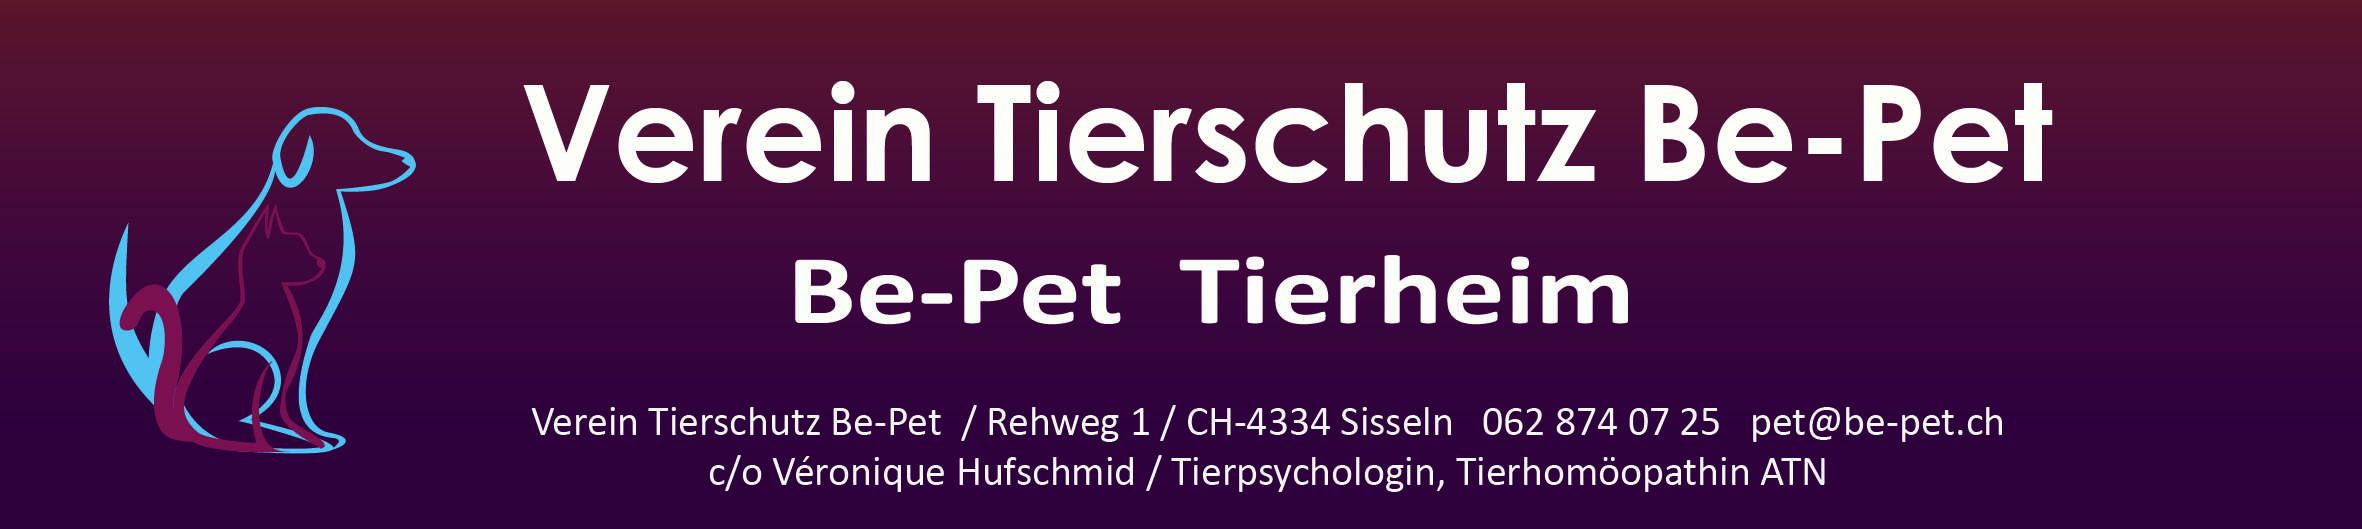 Be-Pet Tierheim